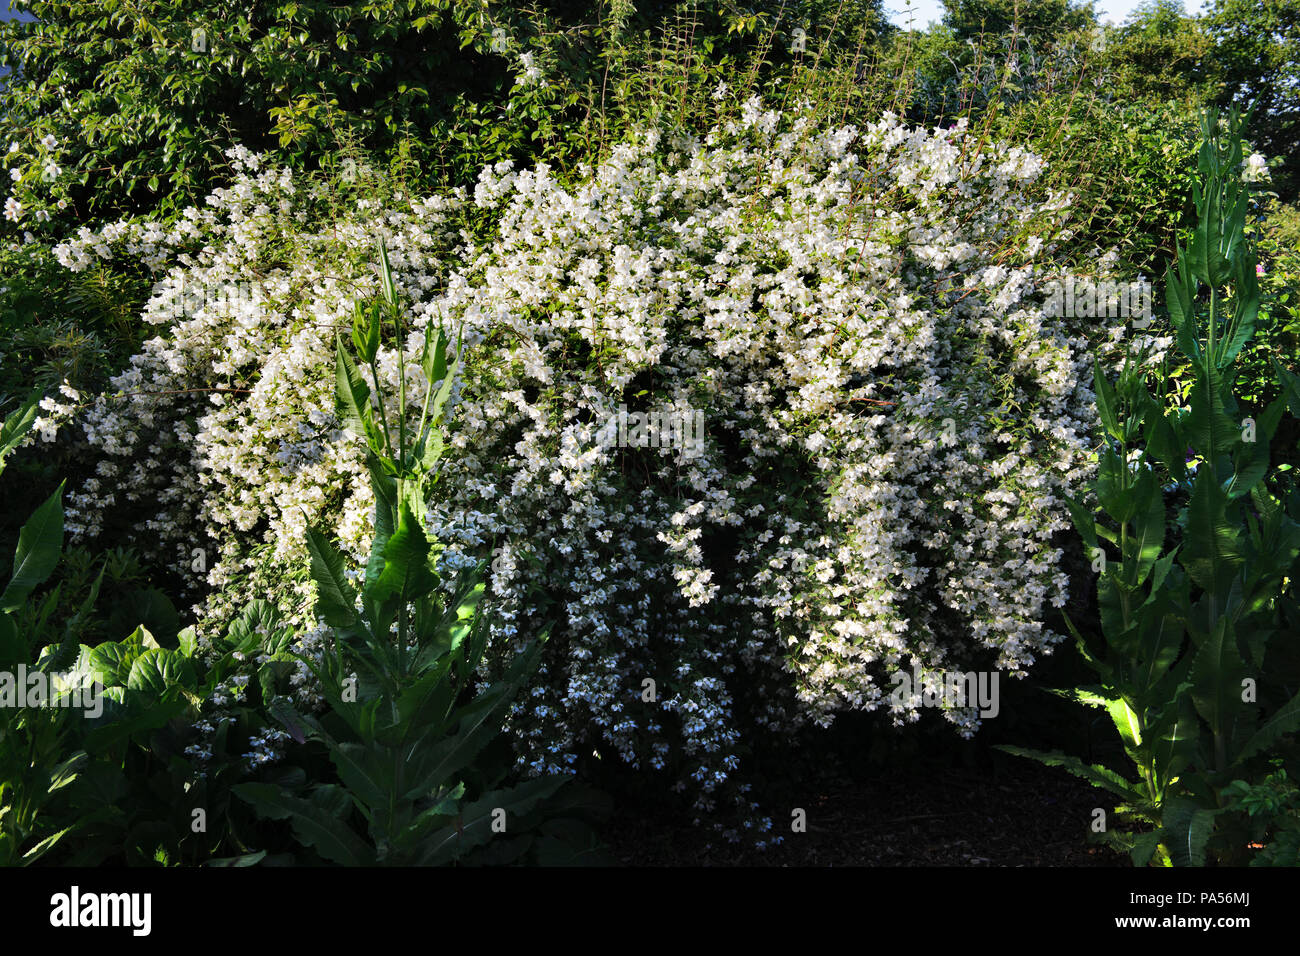 A Philadelphus ('Mock Orange') shrub (most probably microphyllus) in flower in late June in a garden shrubbery near Caernarfon, Wales, UK. - Stock Image